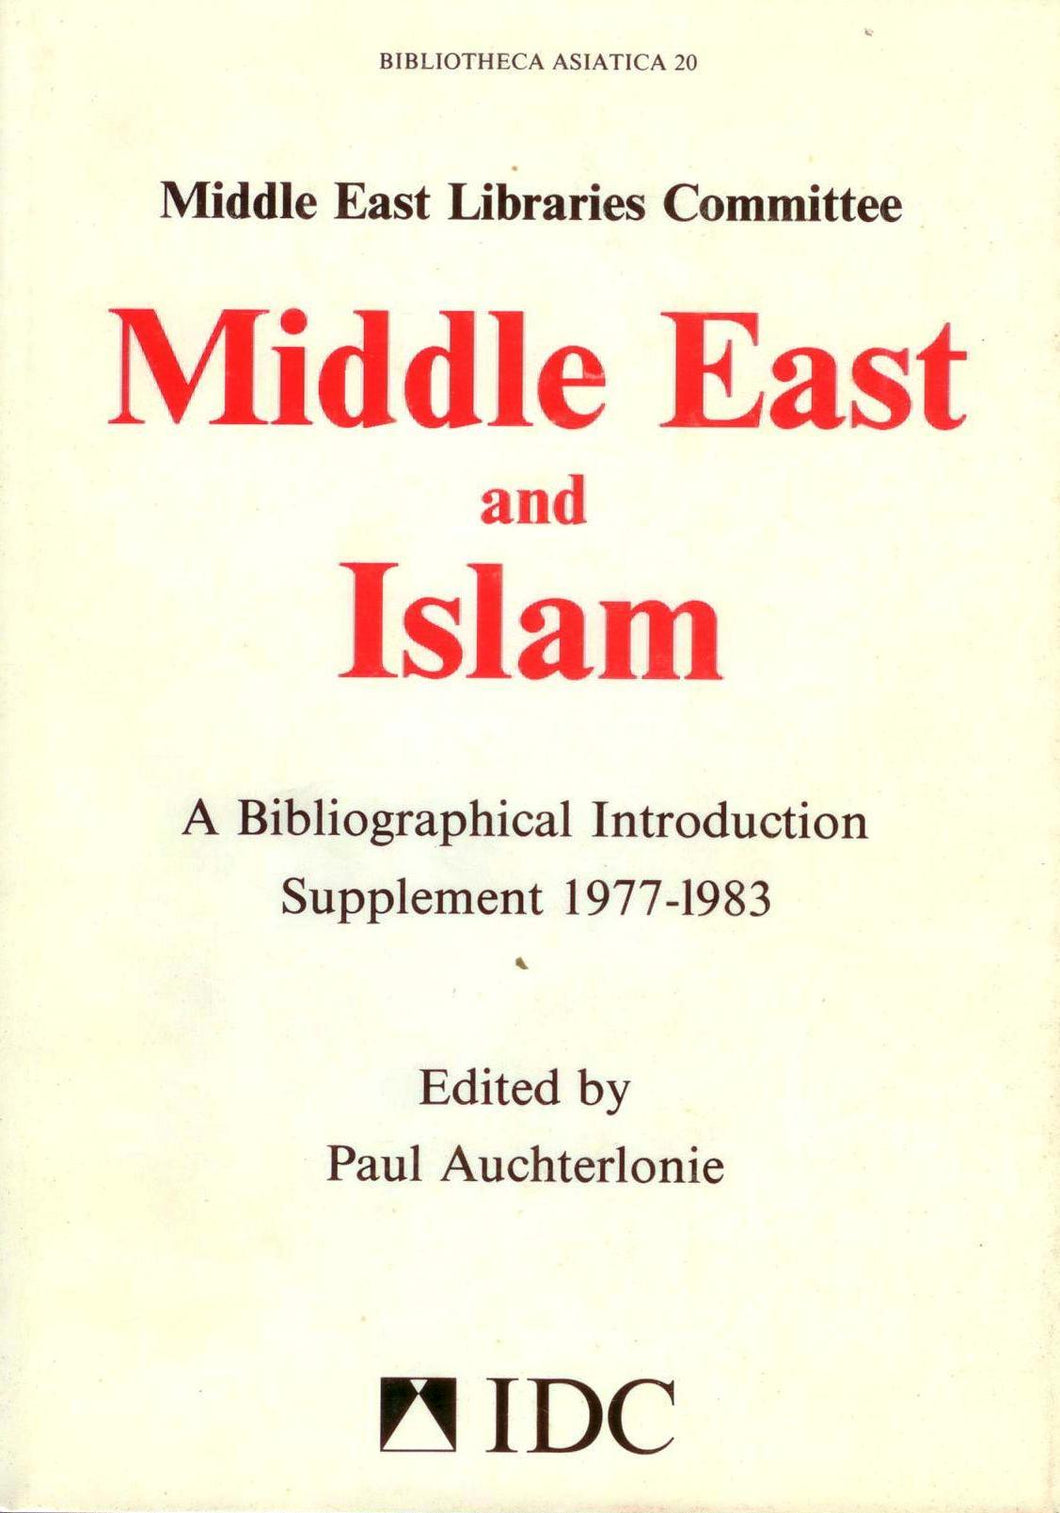 Middle East and Islam: A Bibliographical Introduction Supplement 1977-1983